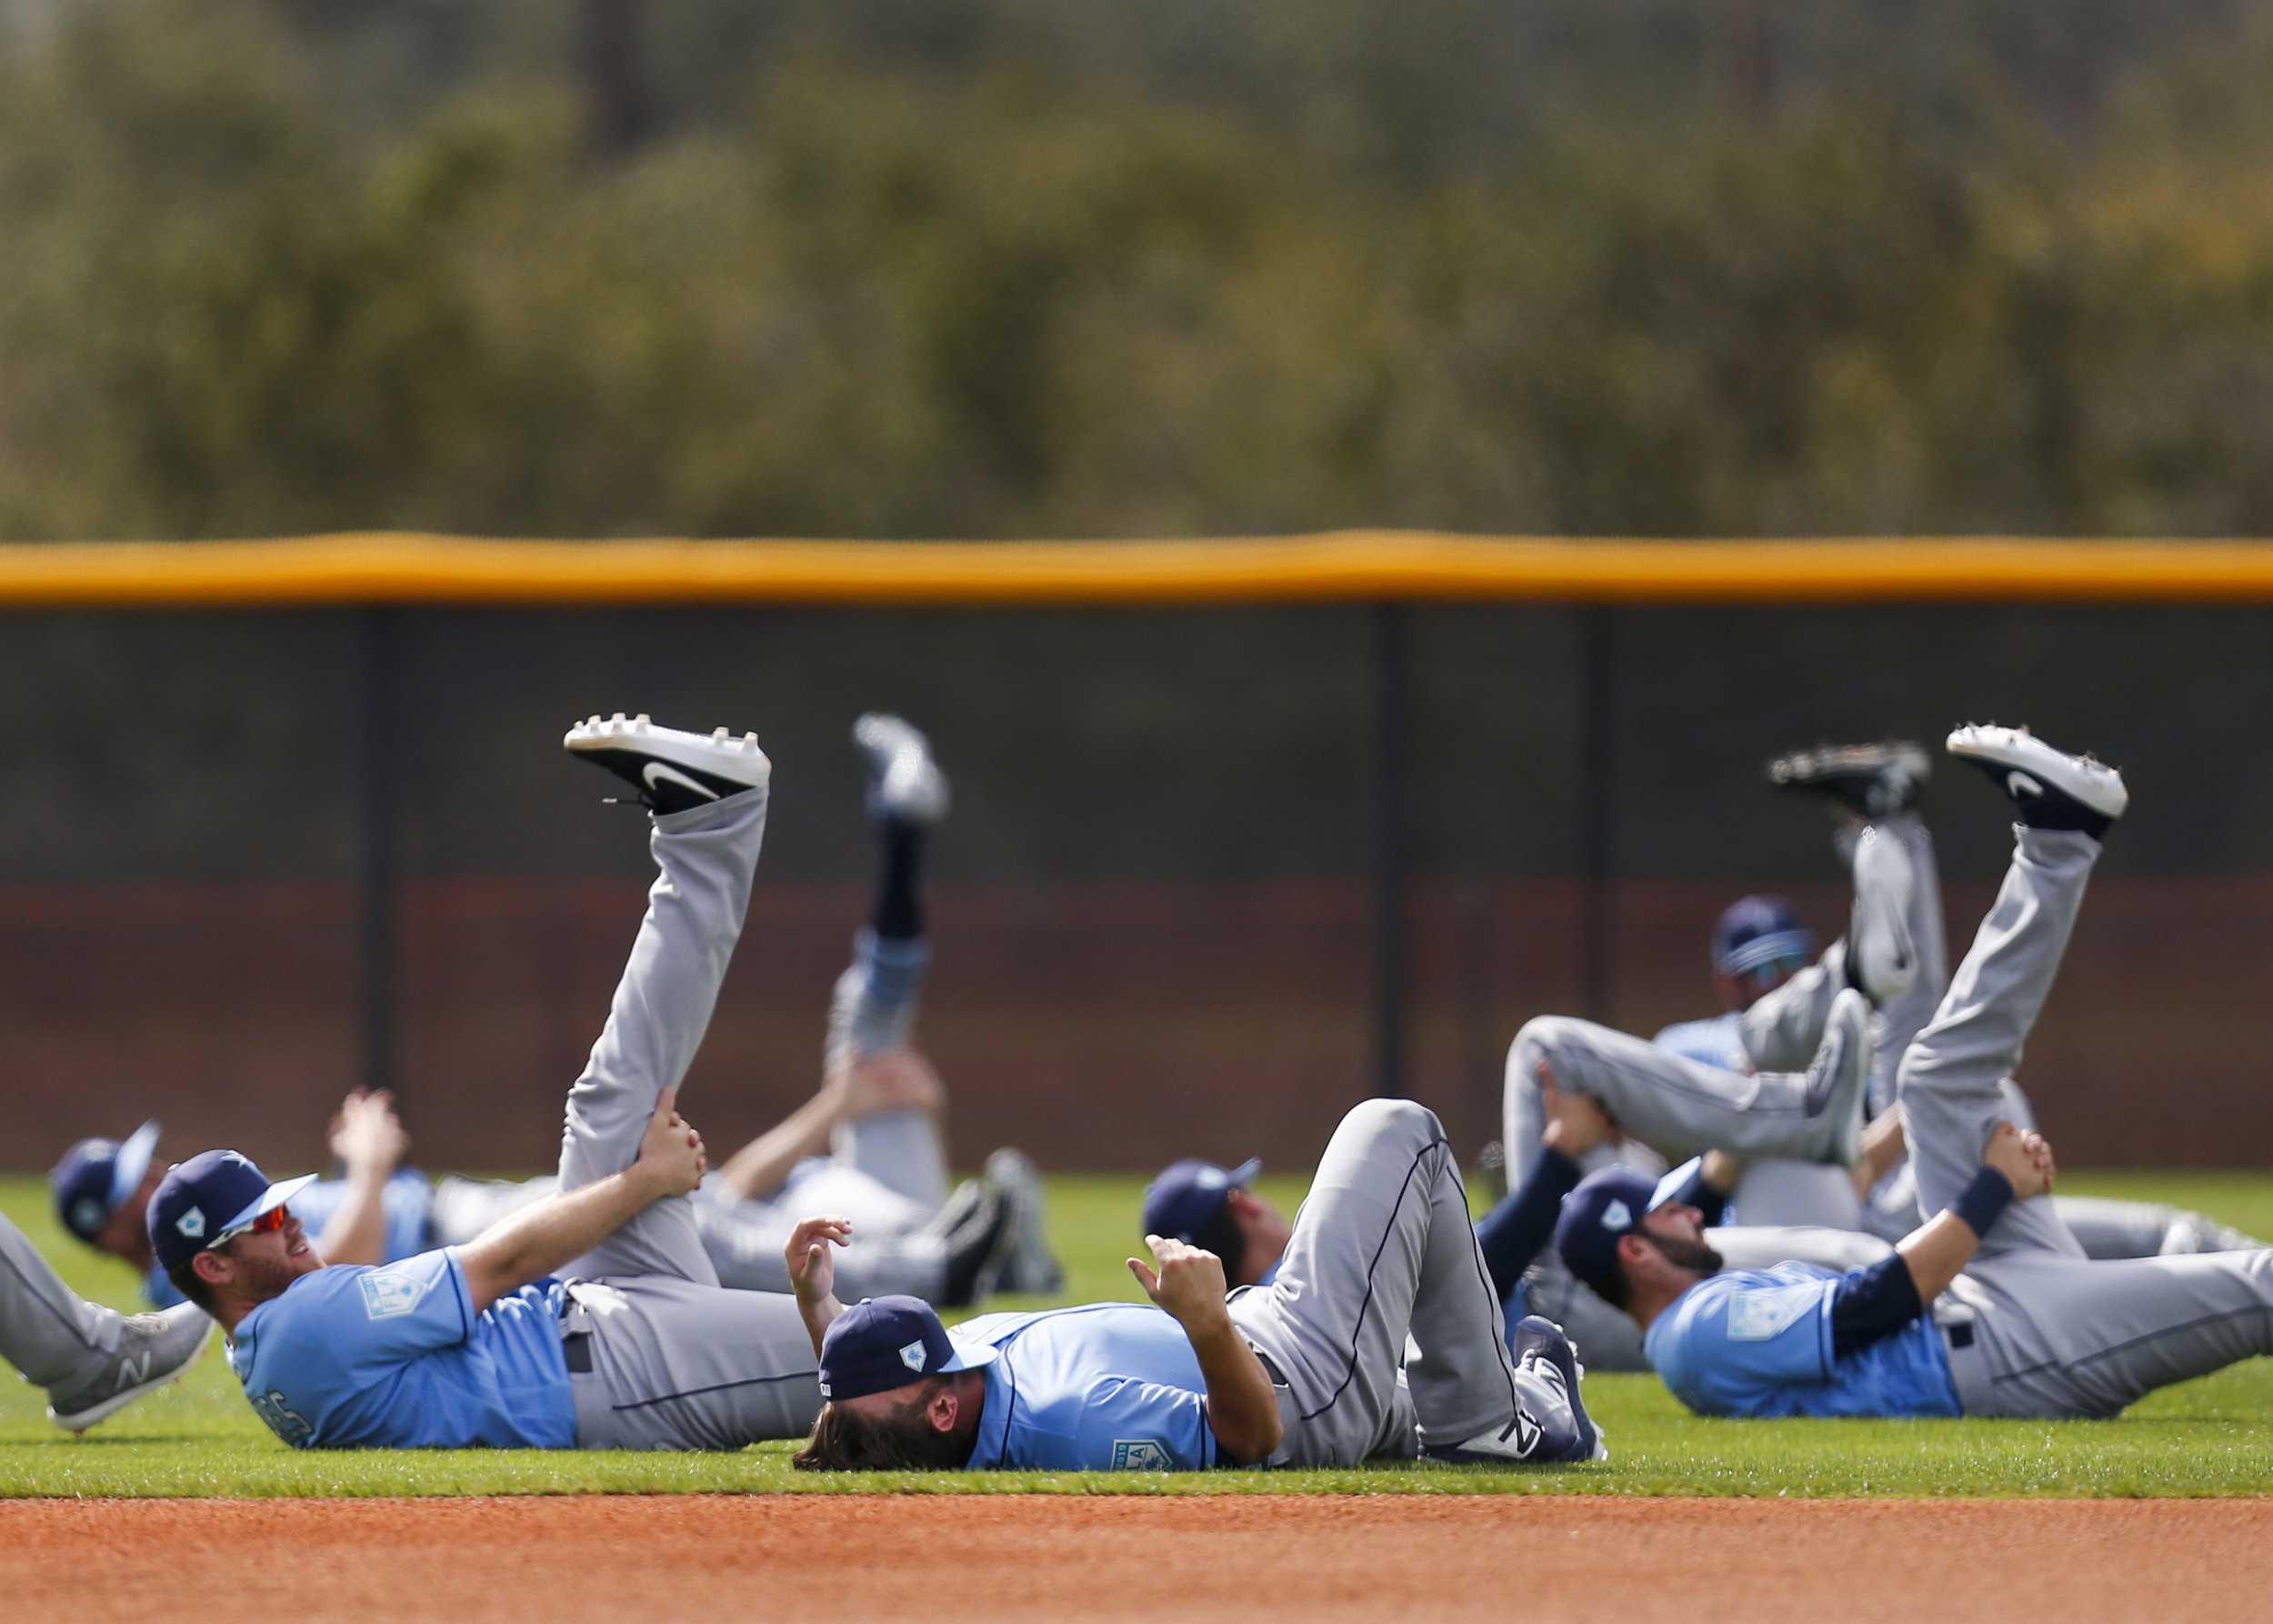 Players hit the field for the Tampa Bay Rays first full-squad spring training workout at Charlotte Sports Park in Port Charlotte, Fla. on Monday, Feb. 18, 2019.